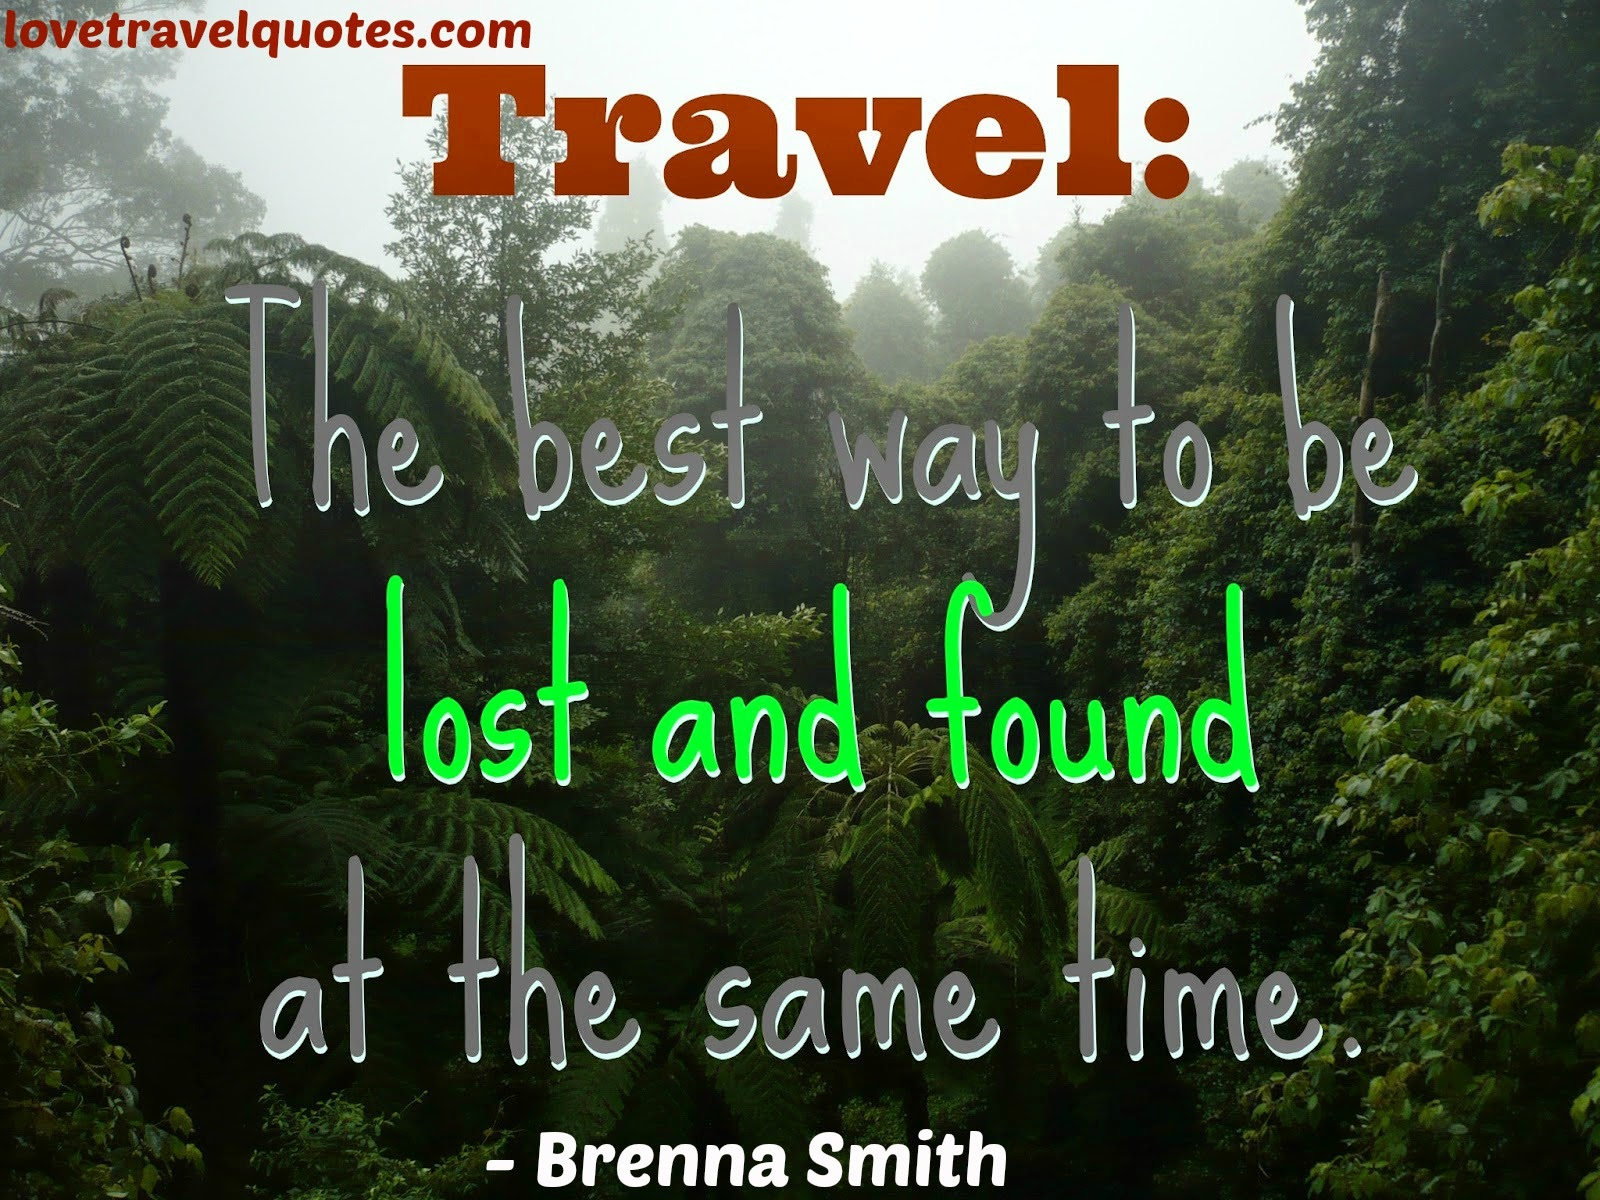 Travel: The best way to be lost and found at the same time